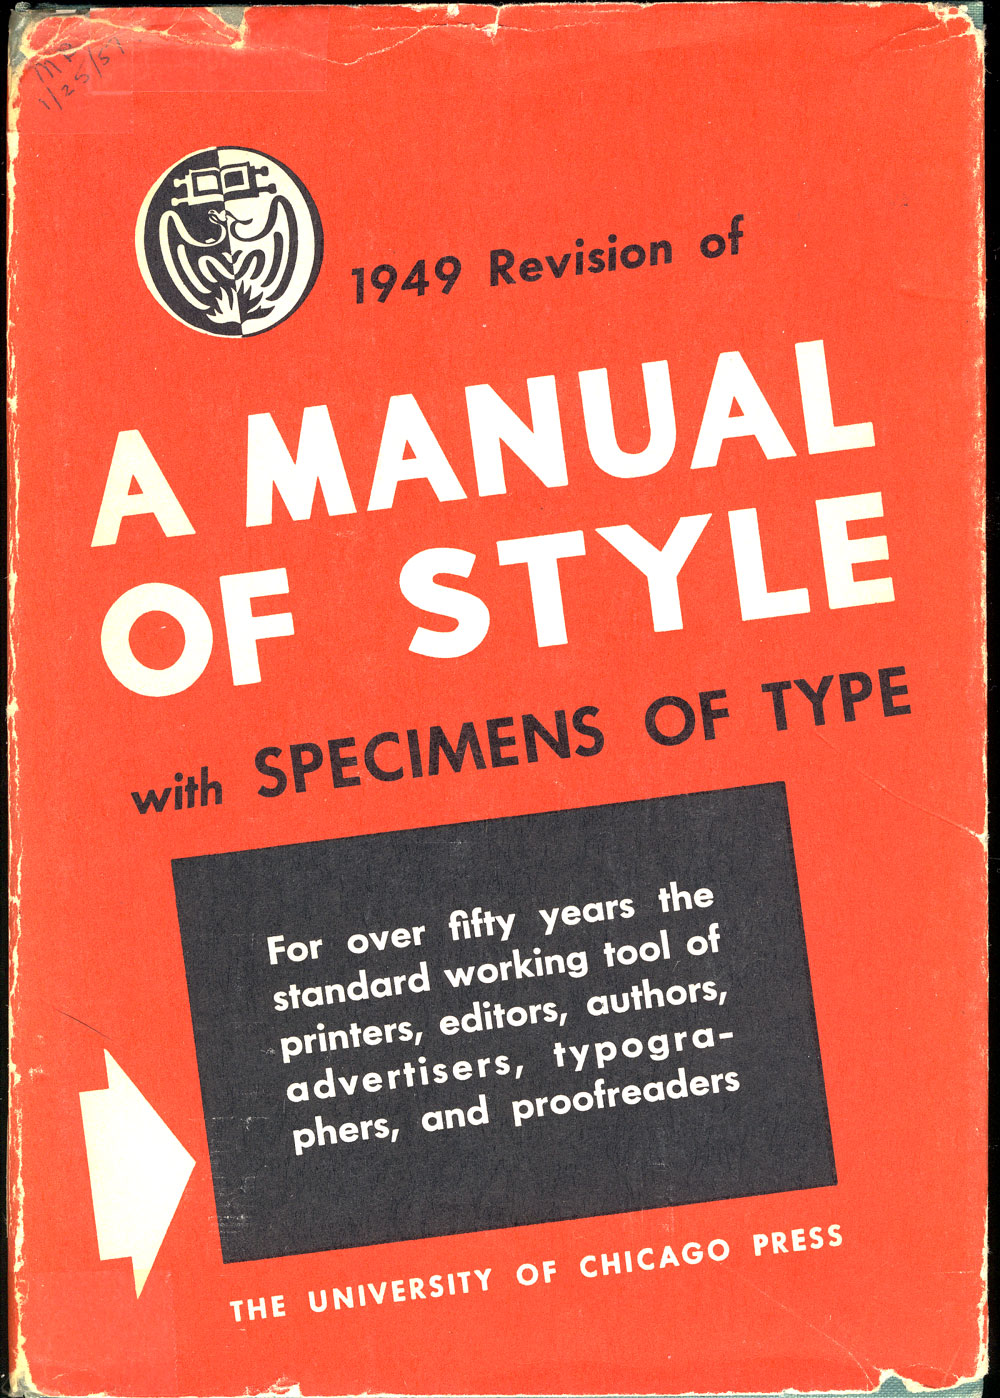 manual-of-style-1949